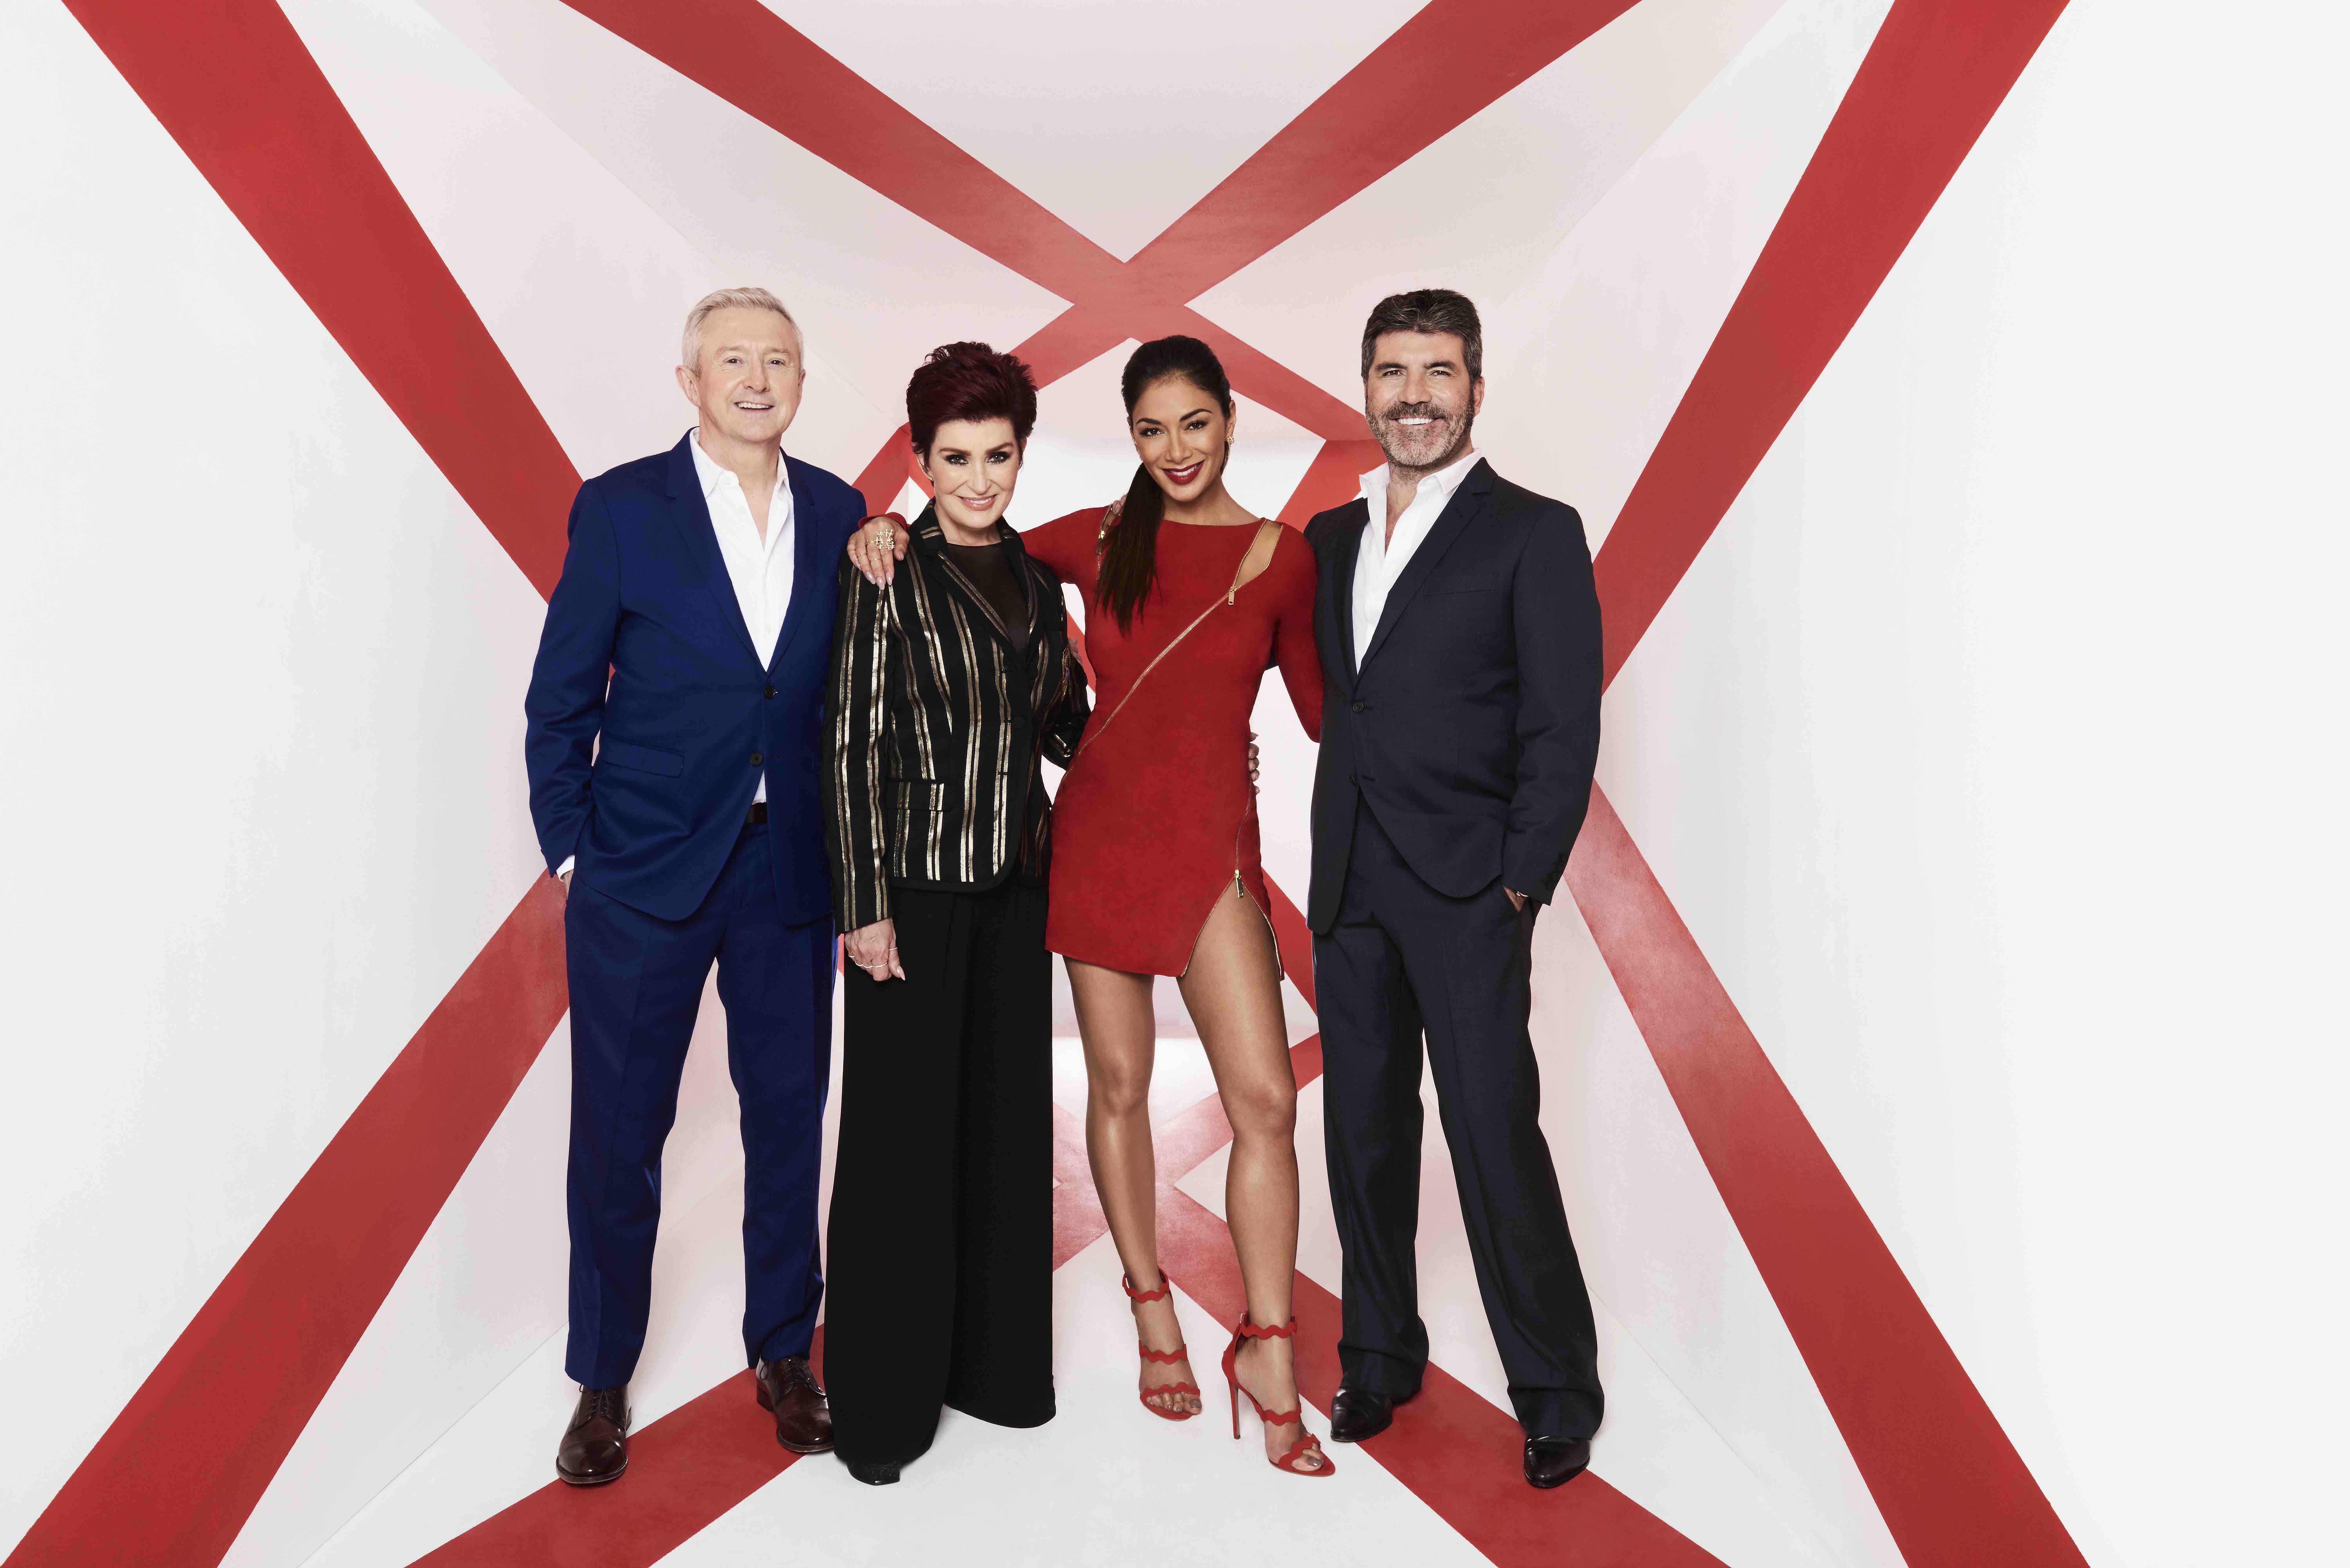 X Factor 2017 to copy Britain's Got Talent with week of live shows before the final! | The X Factor UK 2017 | TwitCelebGossip